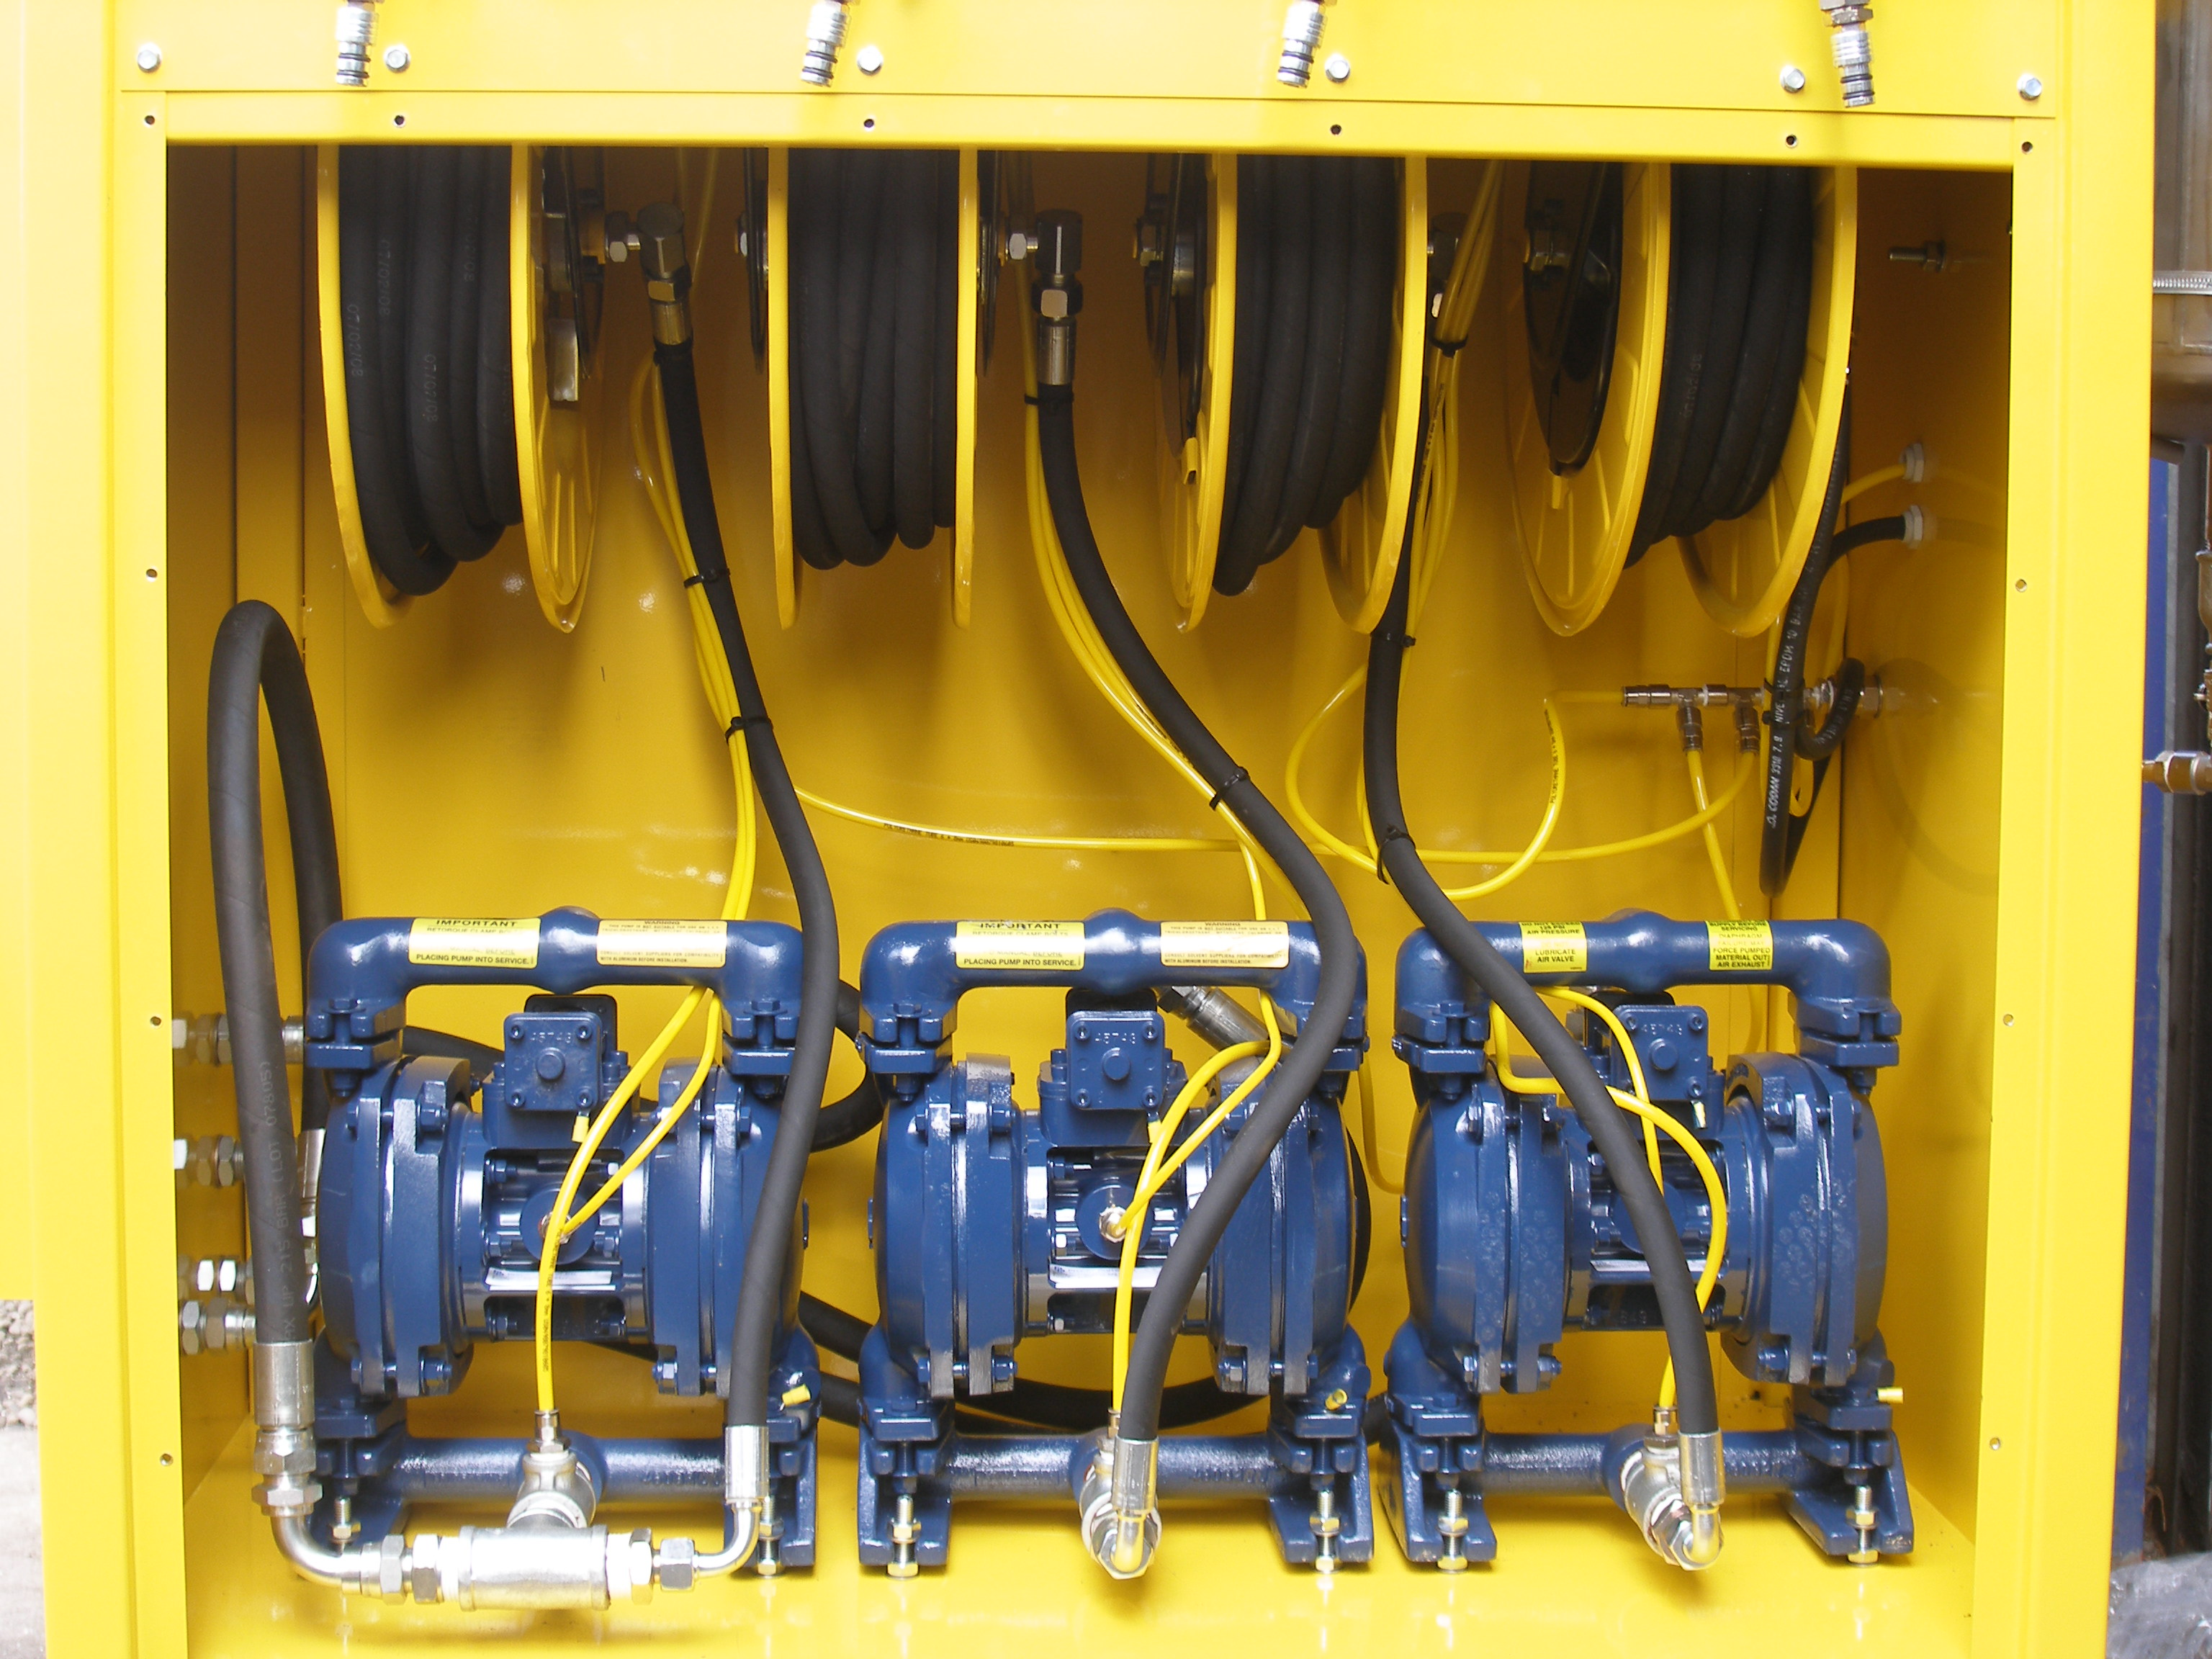 Bespoke pumping solutions, built to meet your exact needs.